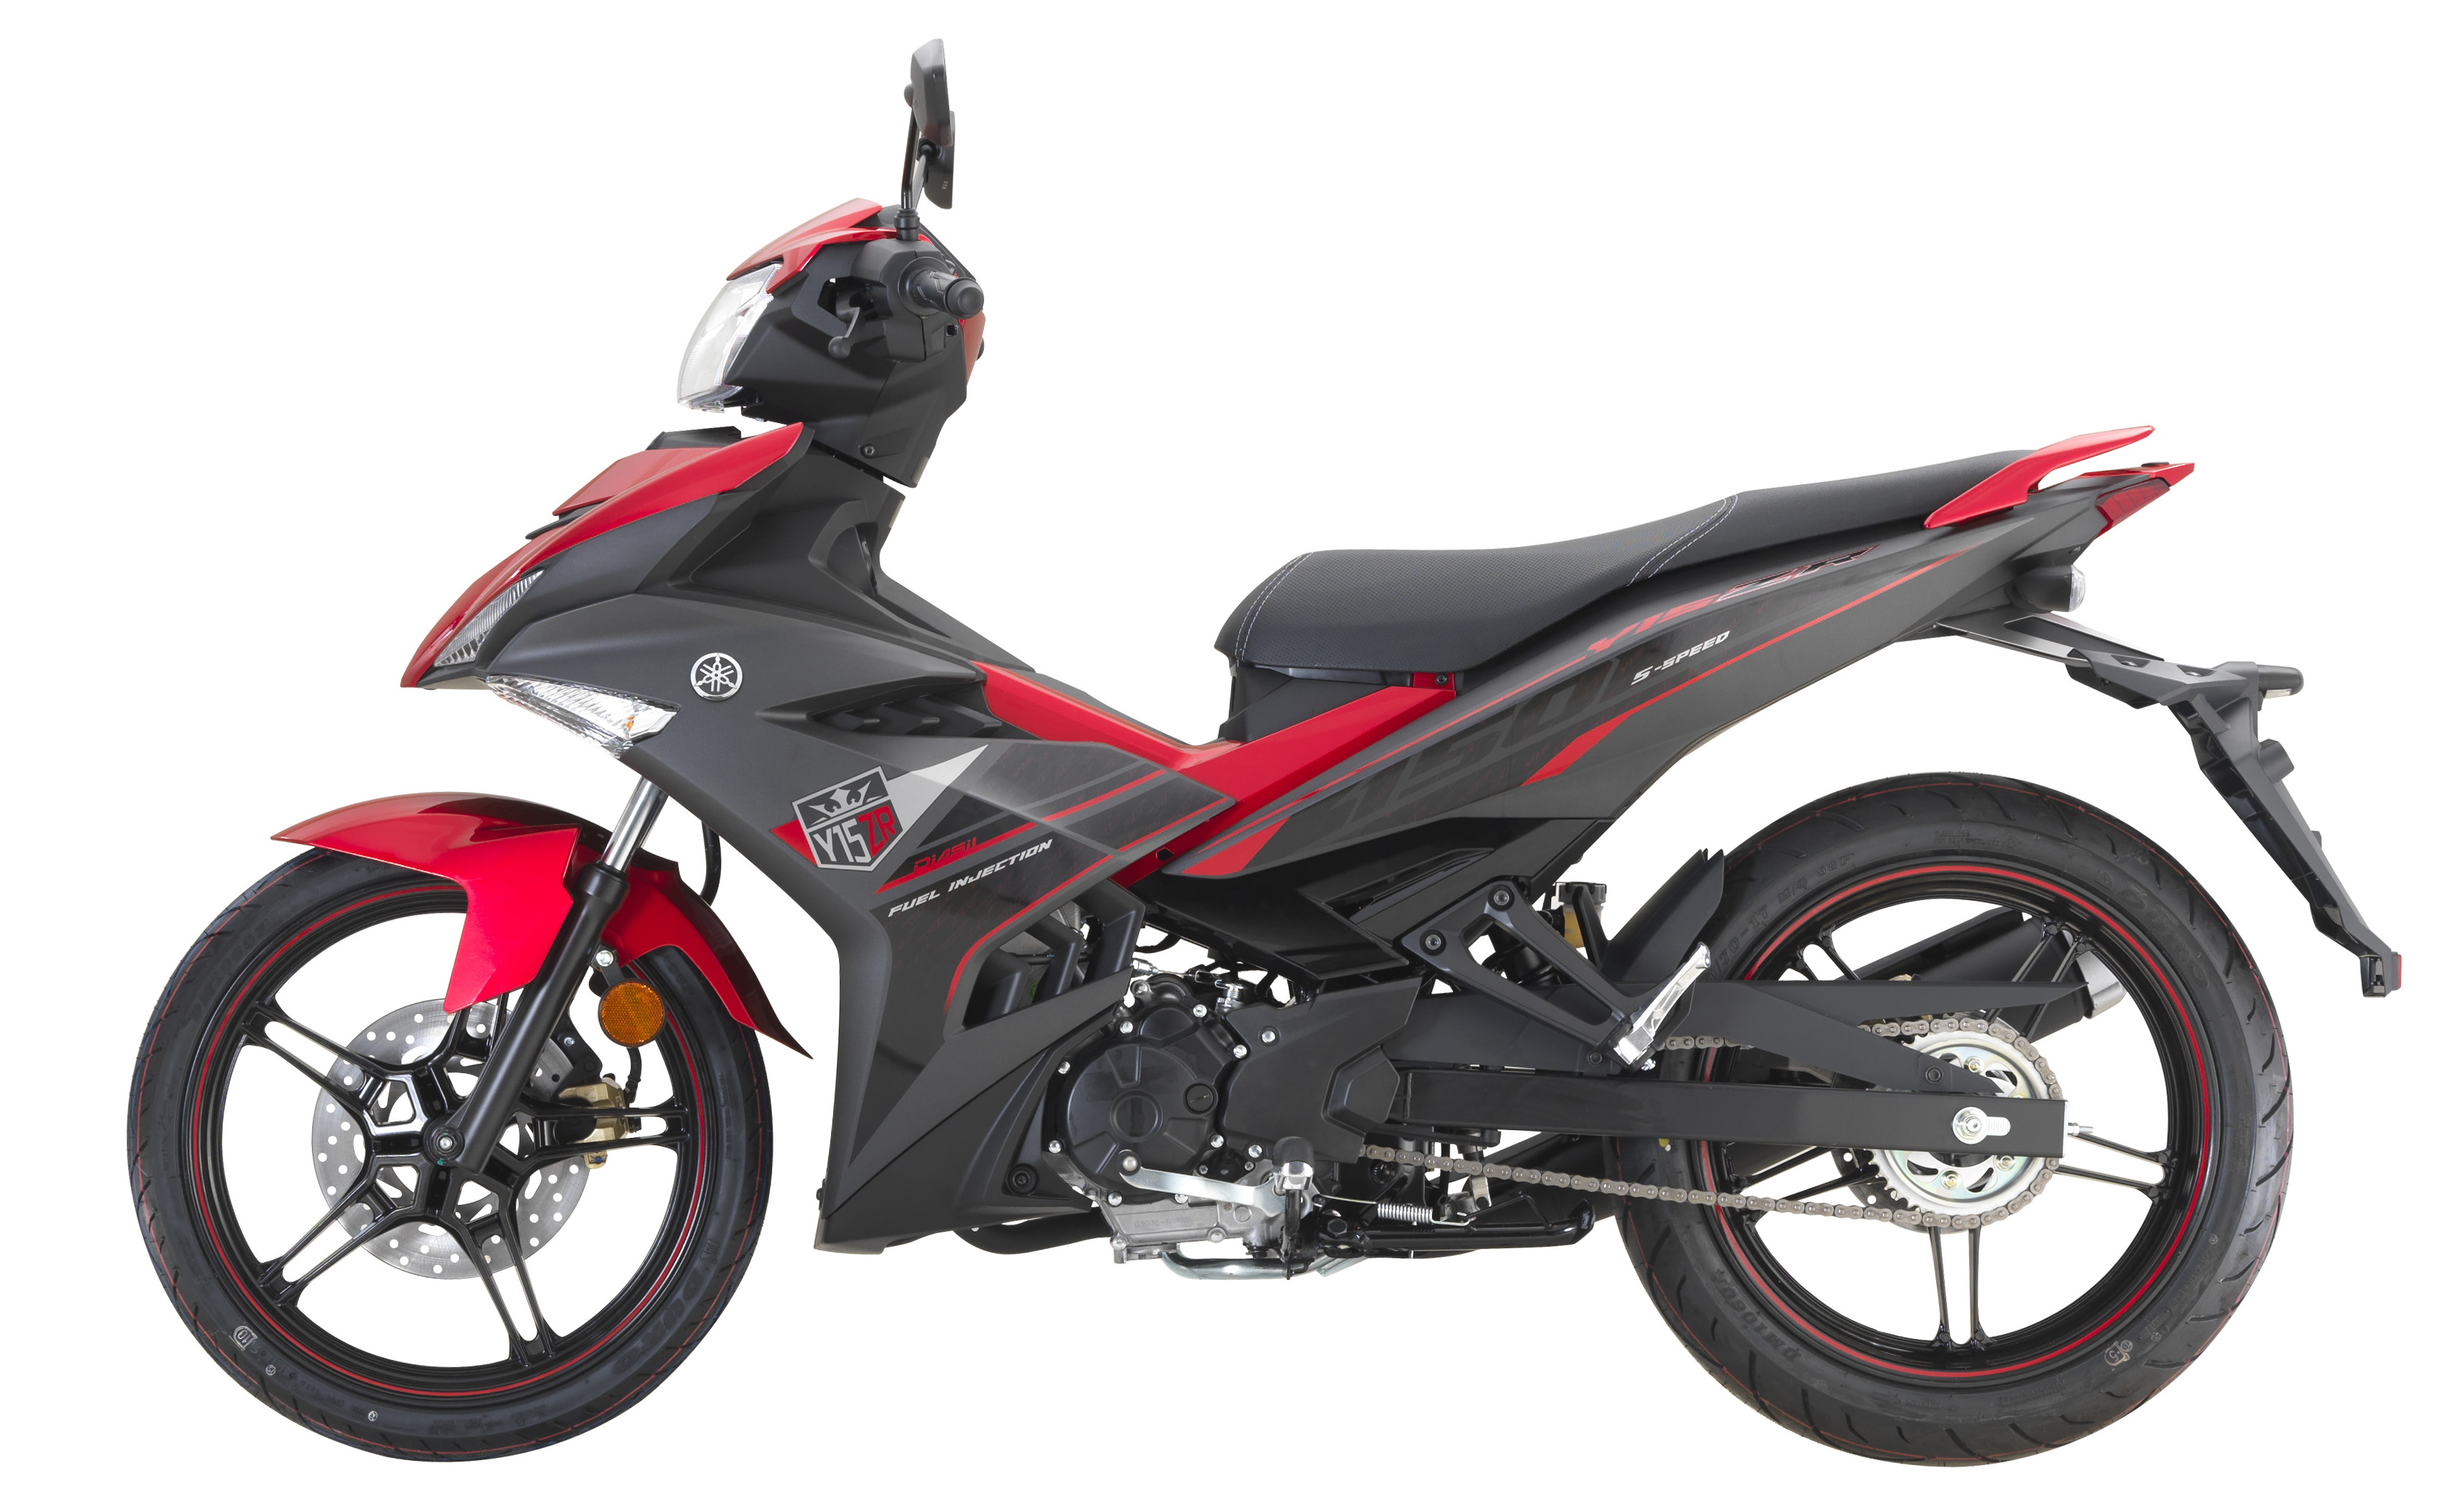 2017 yamaha y15zr new colours graphics rm8 361 image 680435